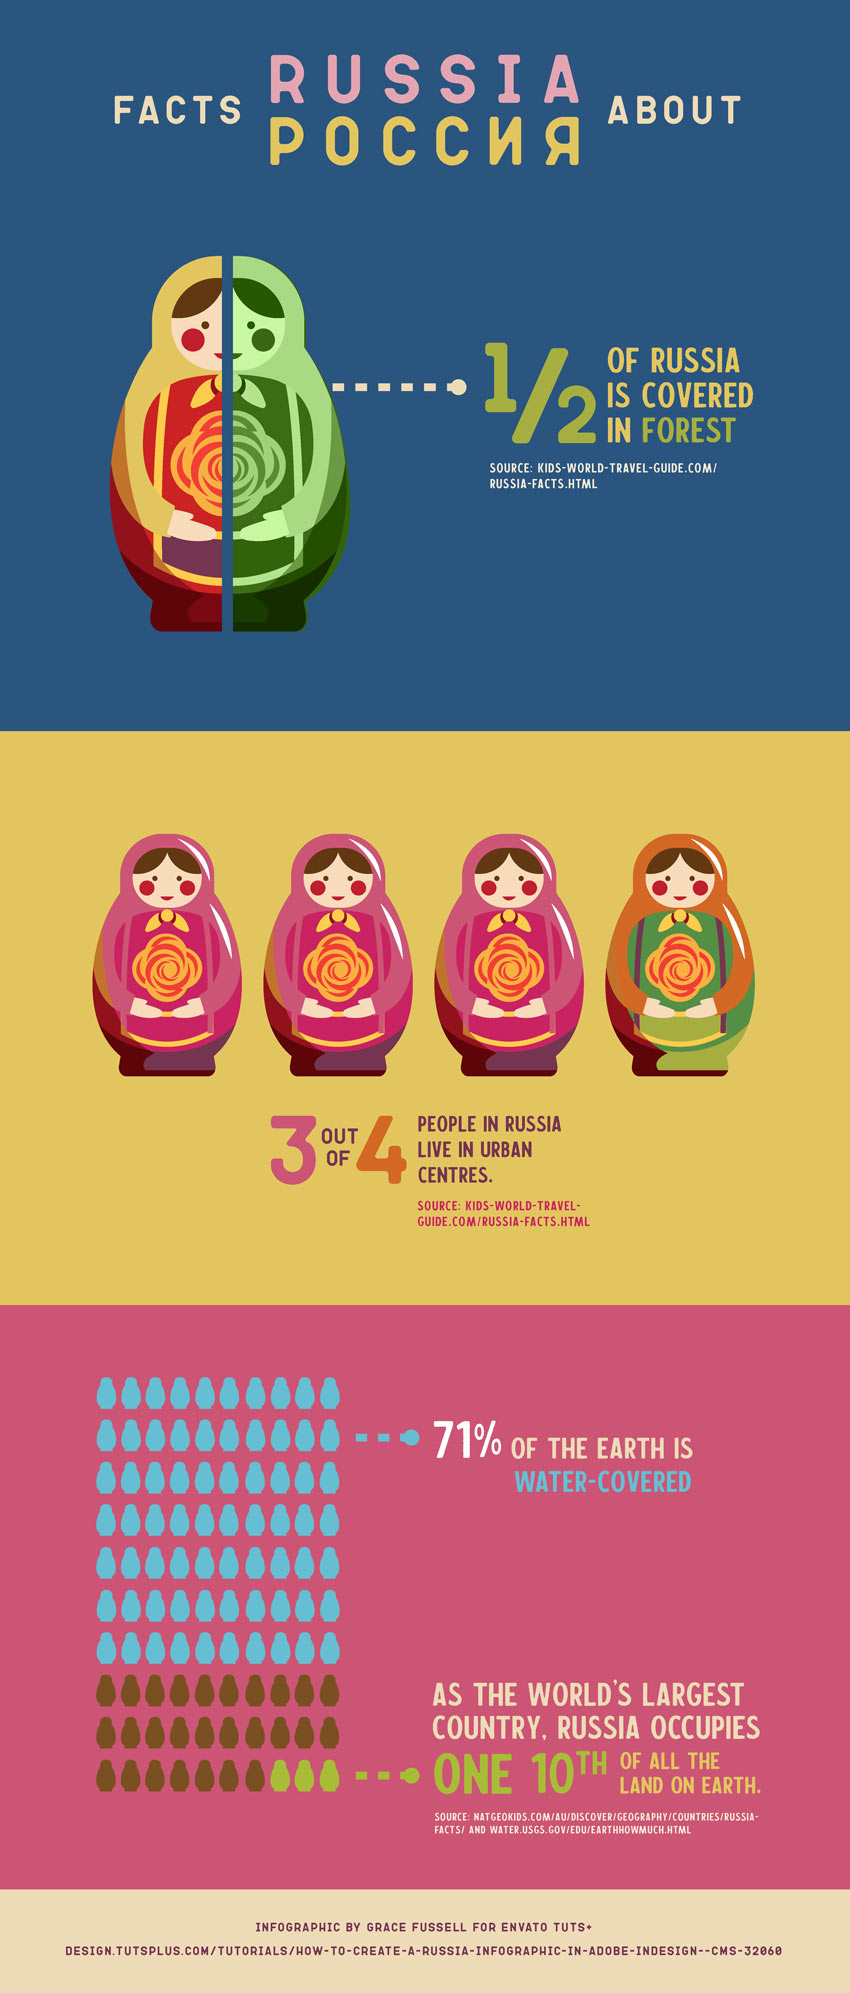 How to Create a Russia Infographic in Adobe InDesign